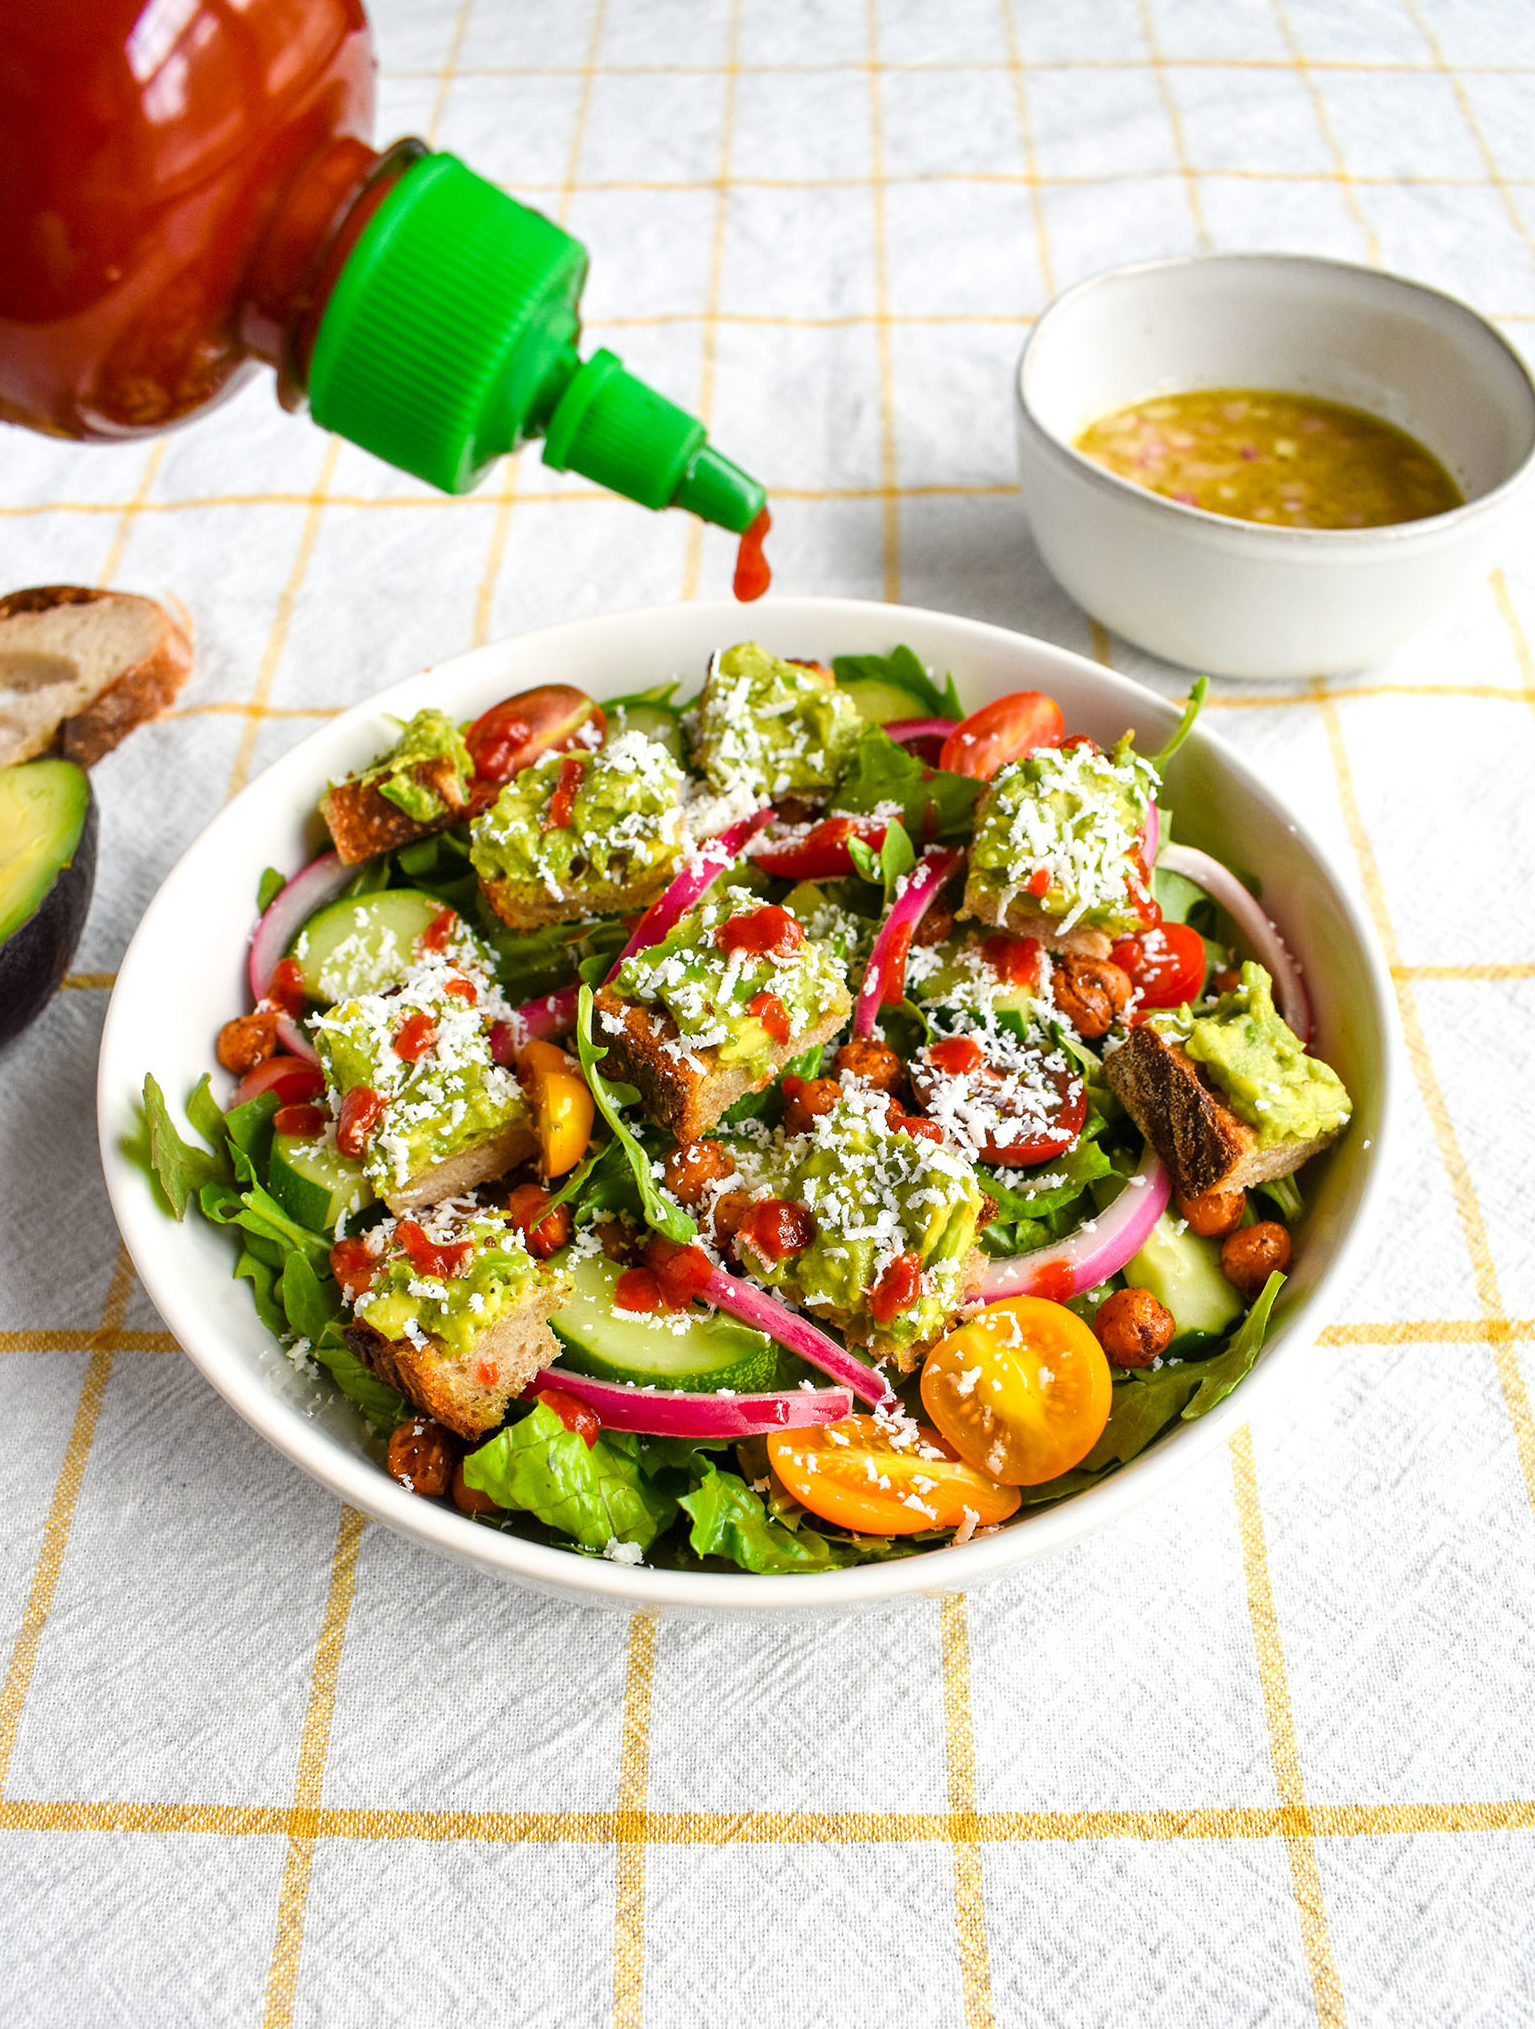 Avocado salad with Sriracha